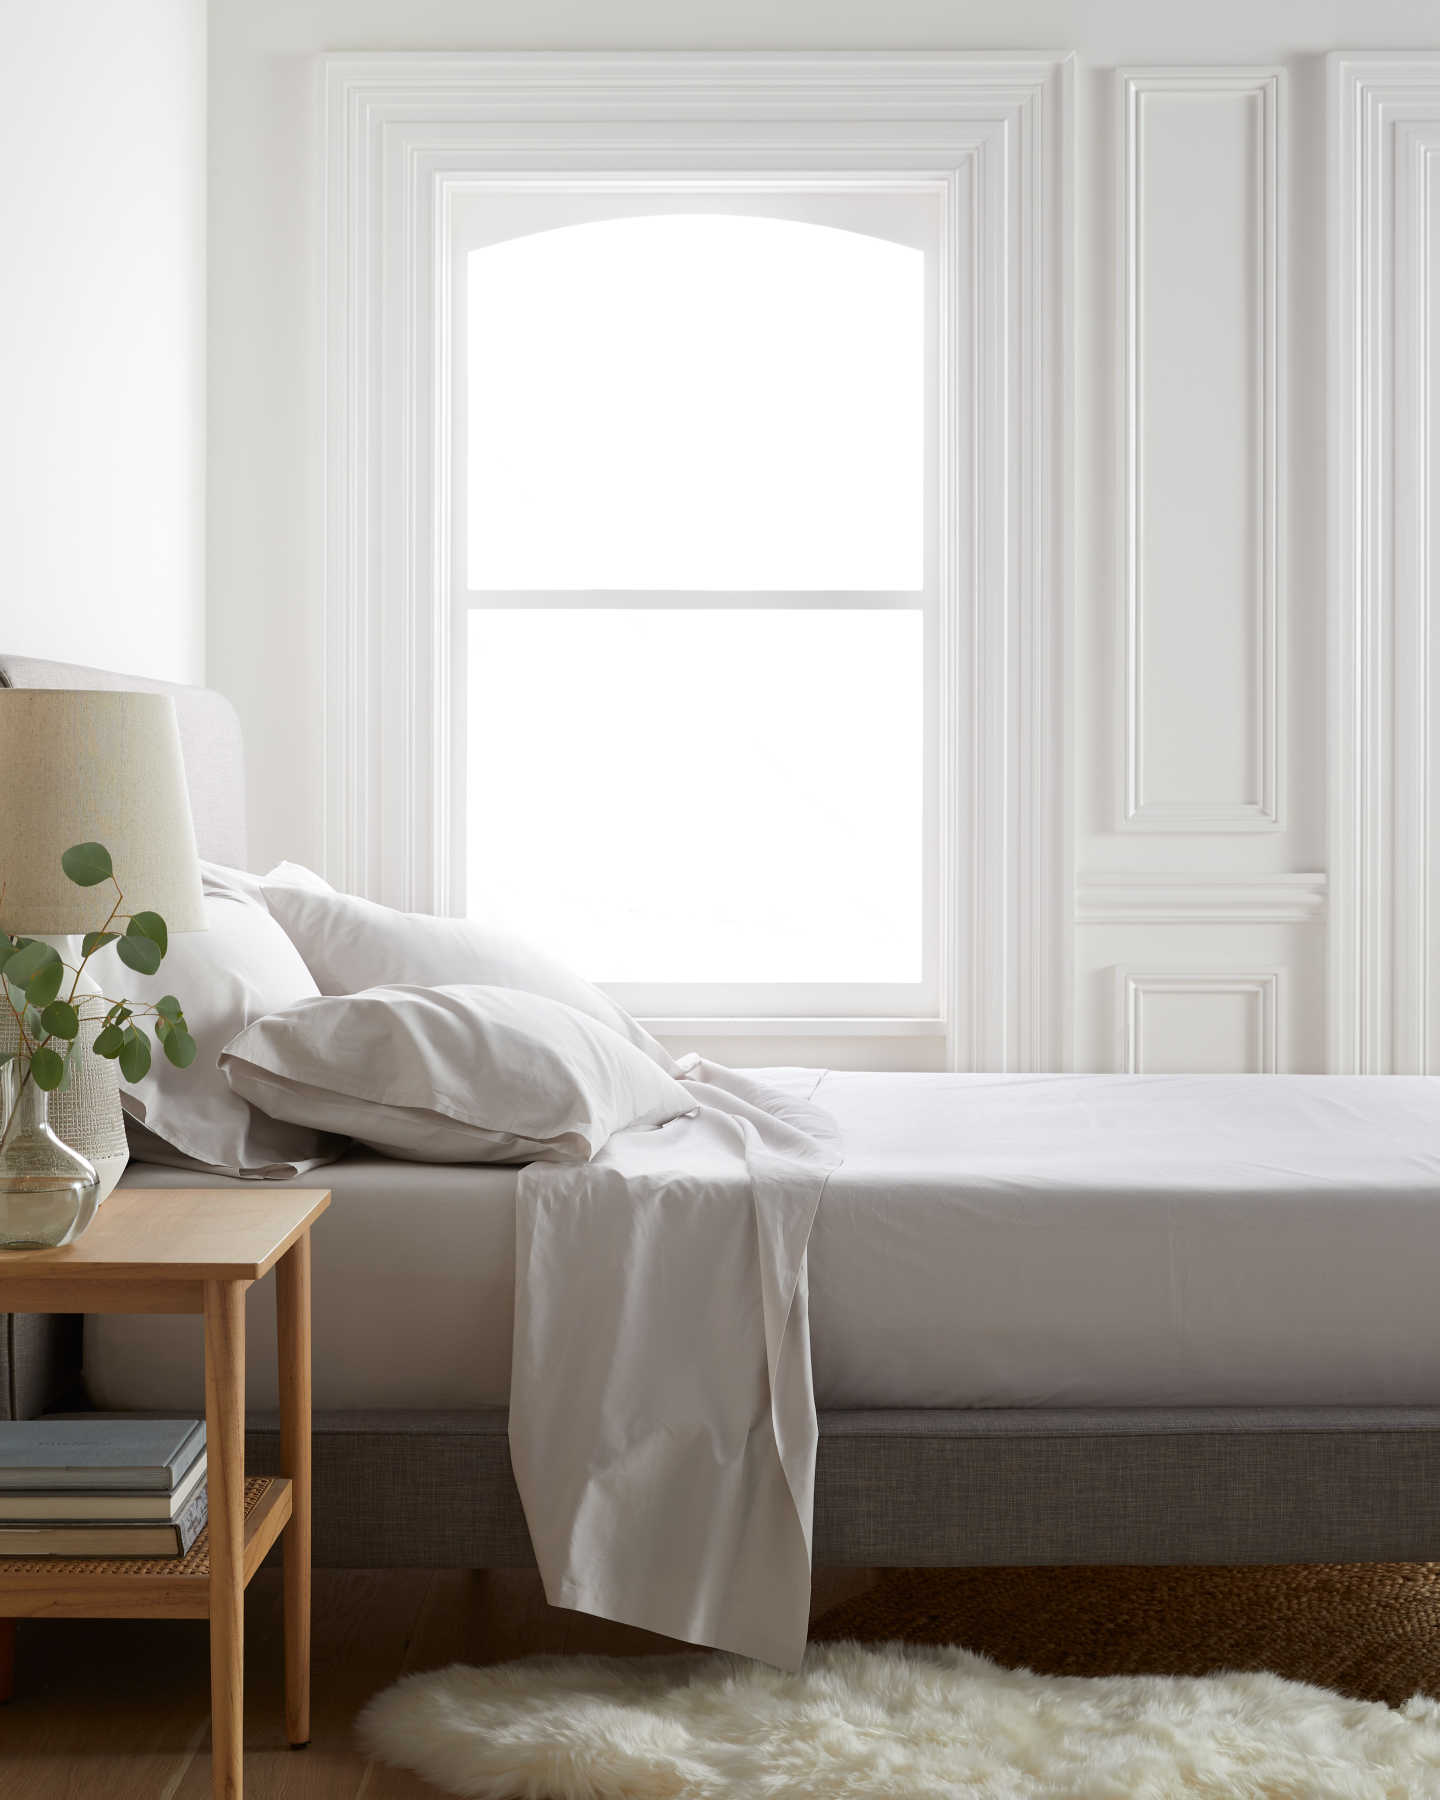 Organic percale sheet set in sand - named the best percale sheets by SleepFoundation.org - also featuring our organic percale pillowcases